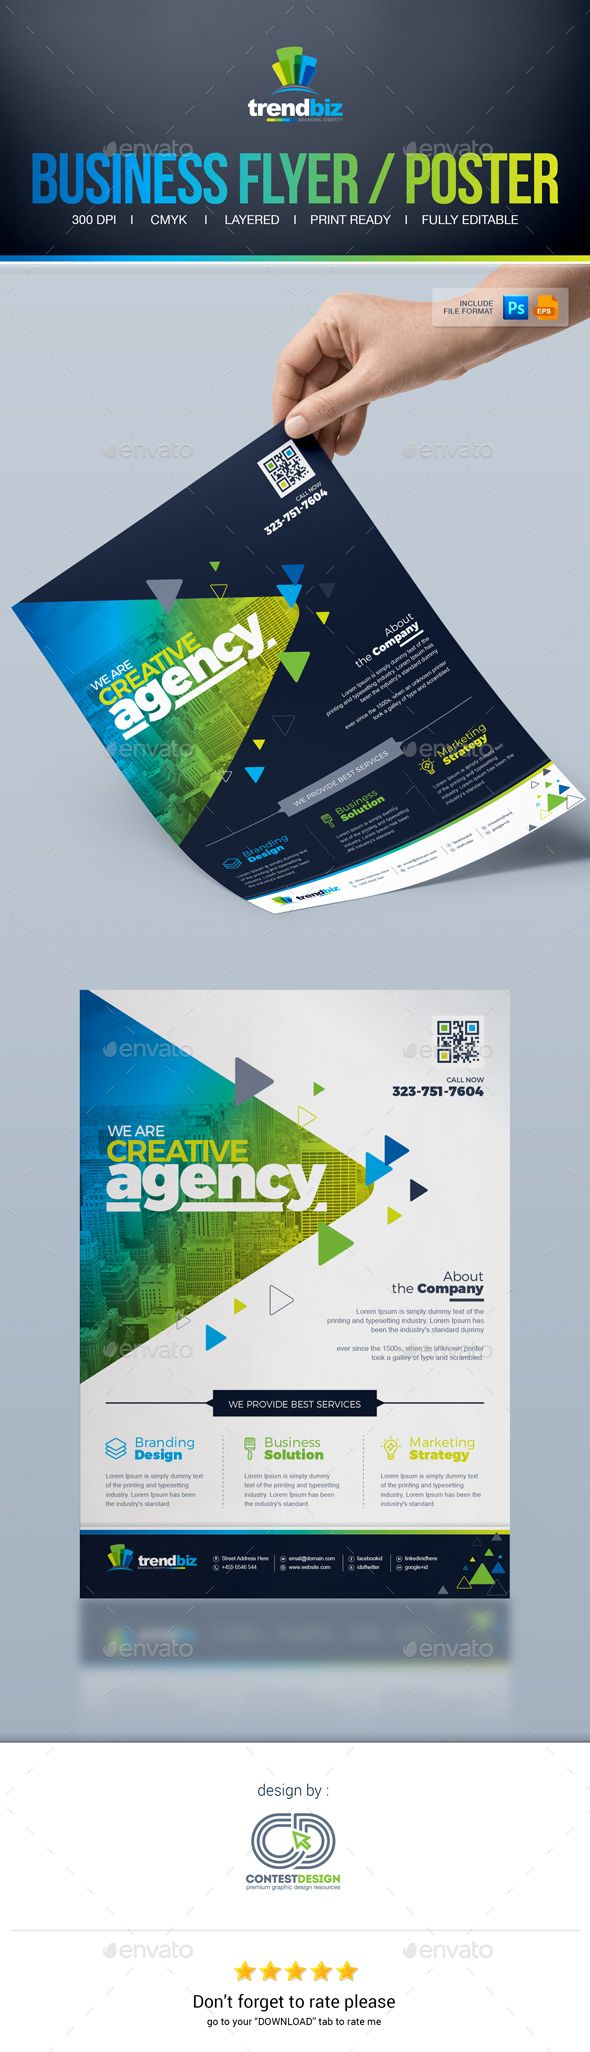 Poster design business - Corporate Business Flyer Poster Advertising Template